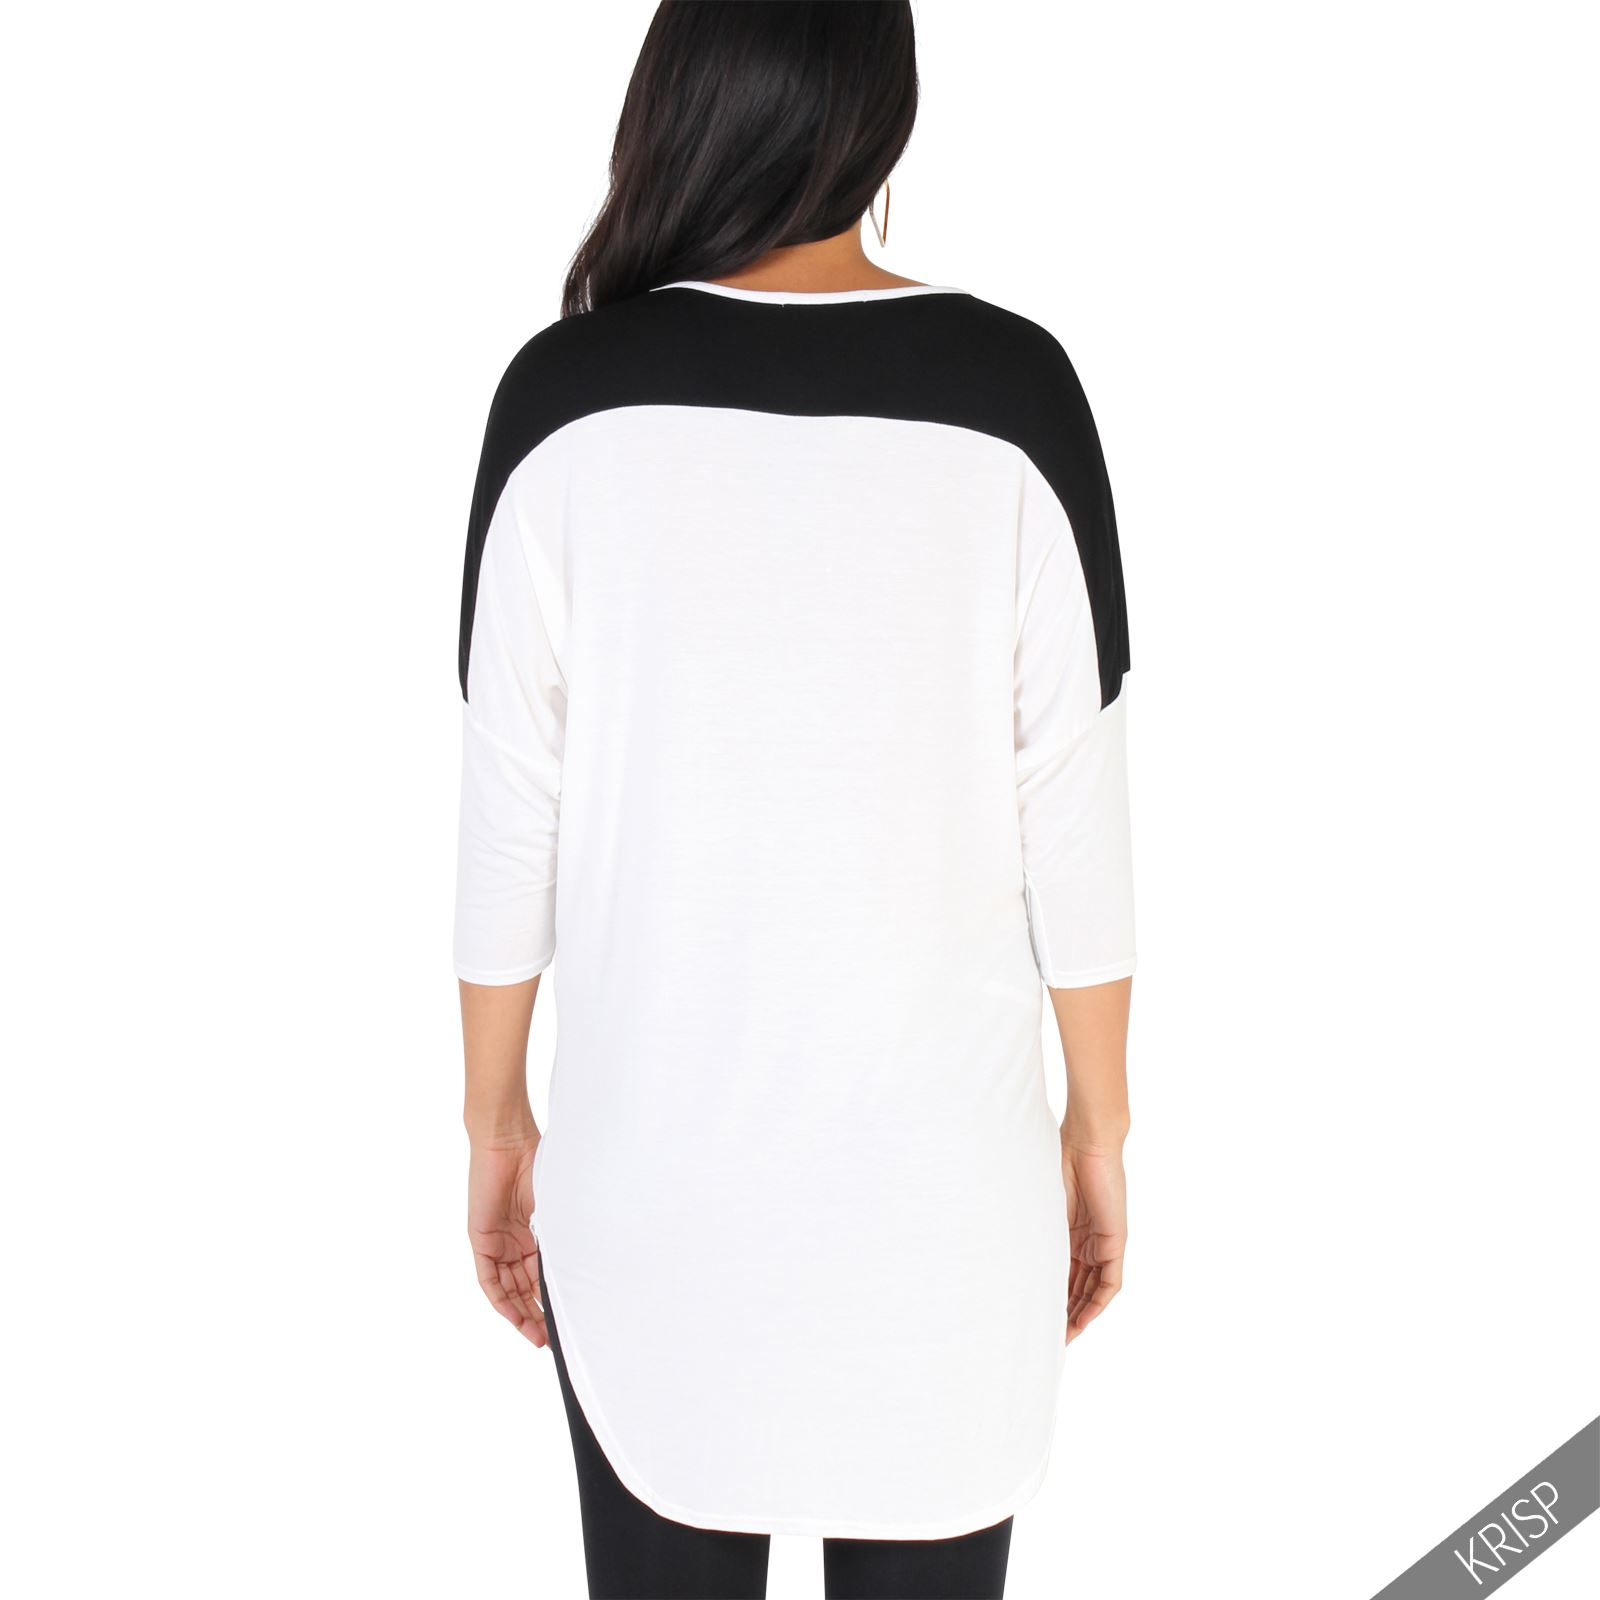 Maternity-Batwing-Baggy-Loose-T-Shirt-Tunic-Top-3-4-Sleeve-Dip-Hem-Long-Casual thumbnail 5